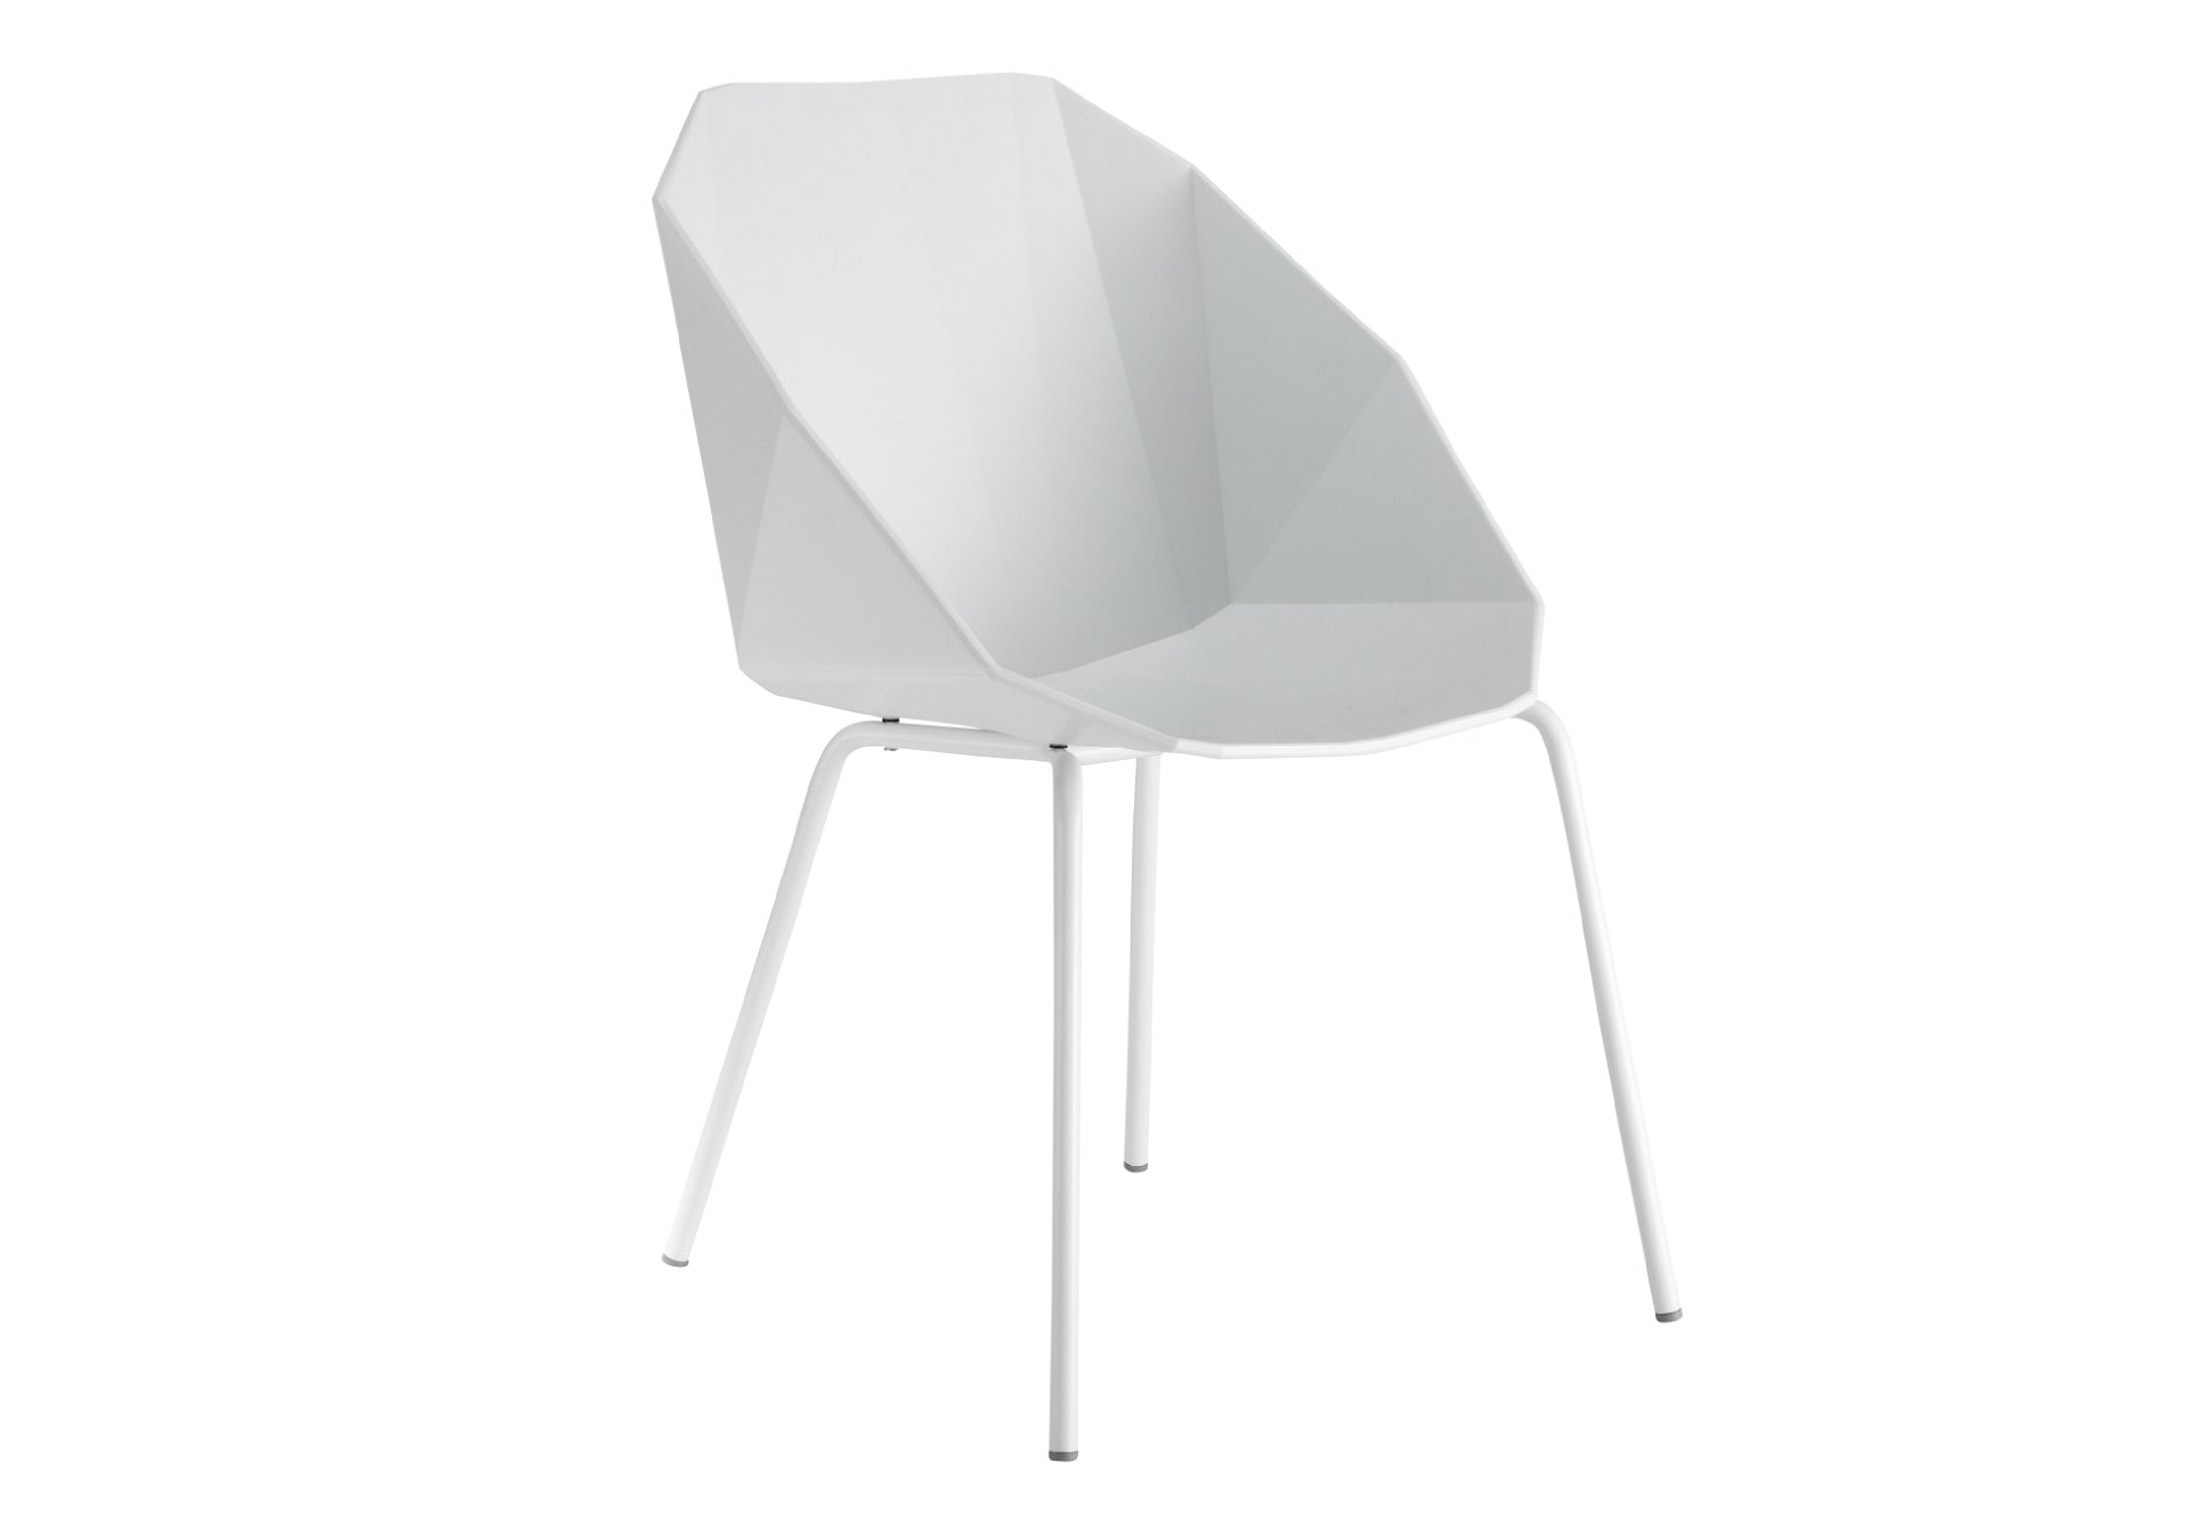 Island dining chair by ligne roset modern dining chairs los angeles - Rocher Chair Rocher Chair